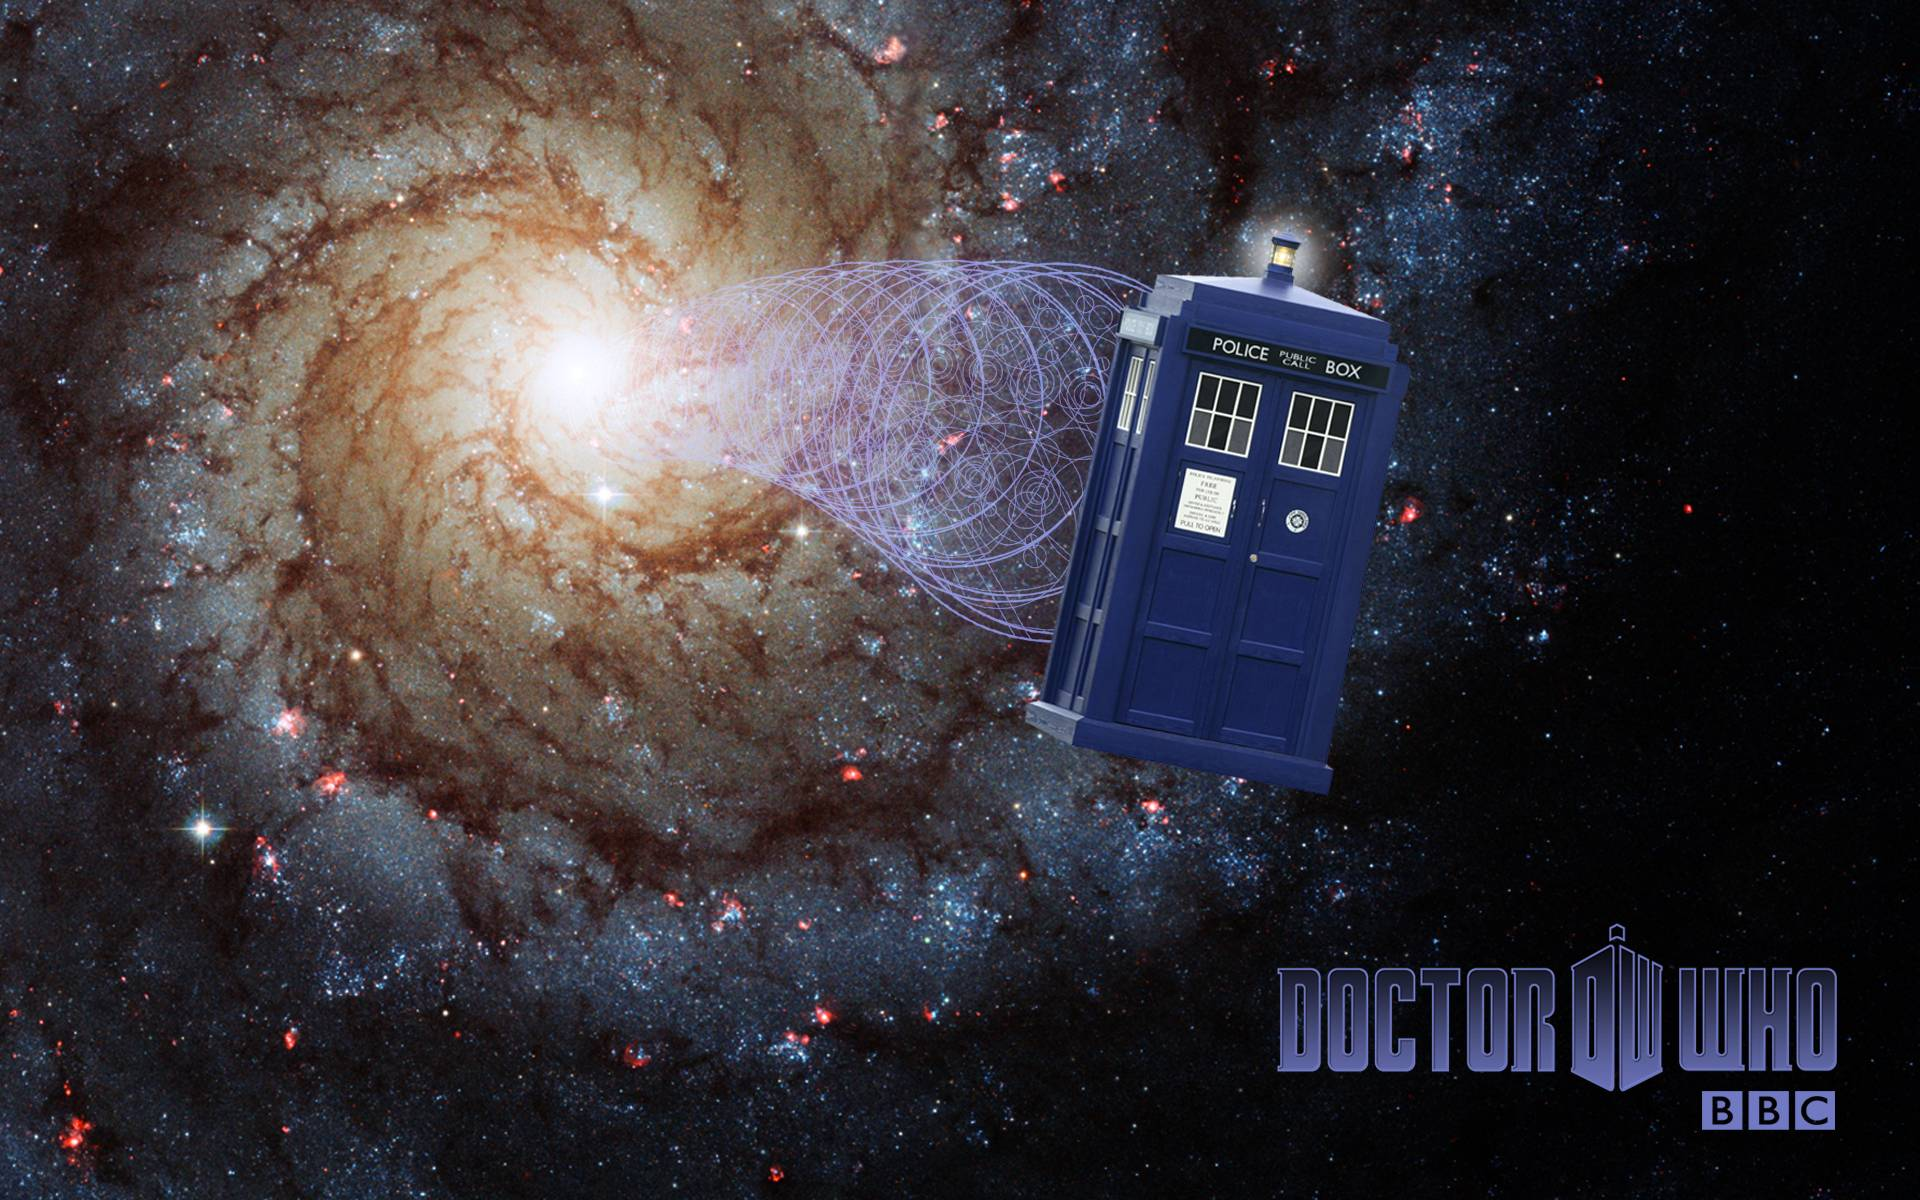 tardis images hd wallpaper - photo #37